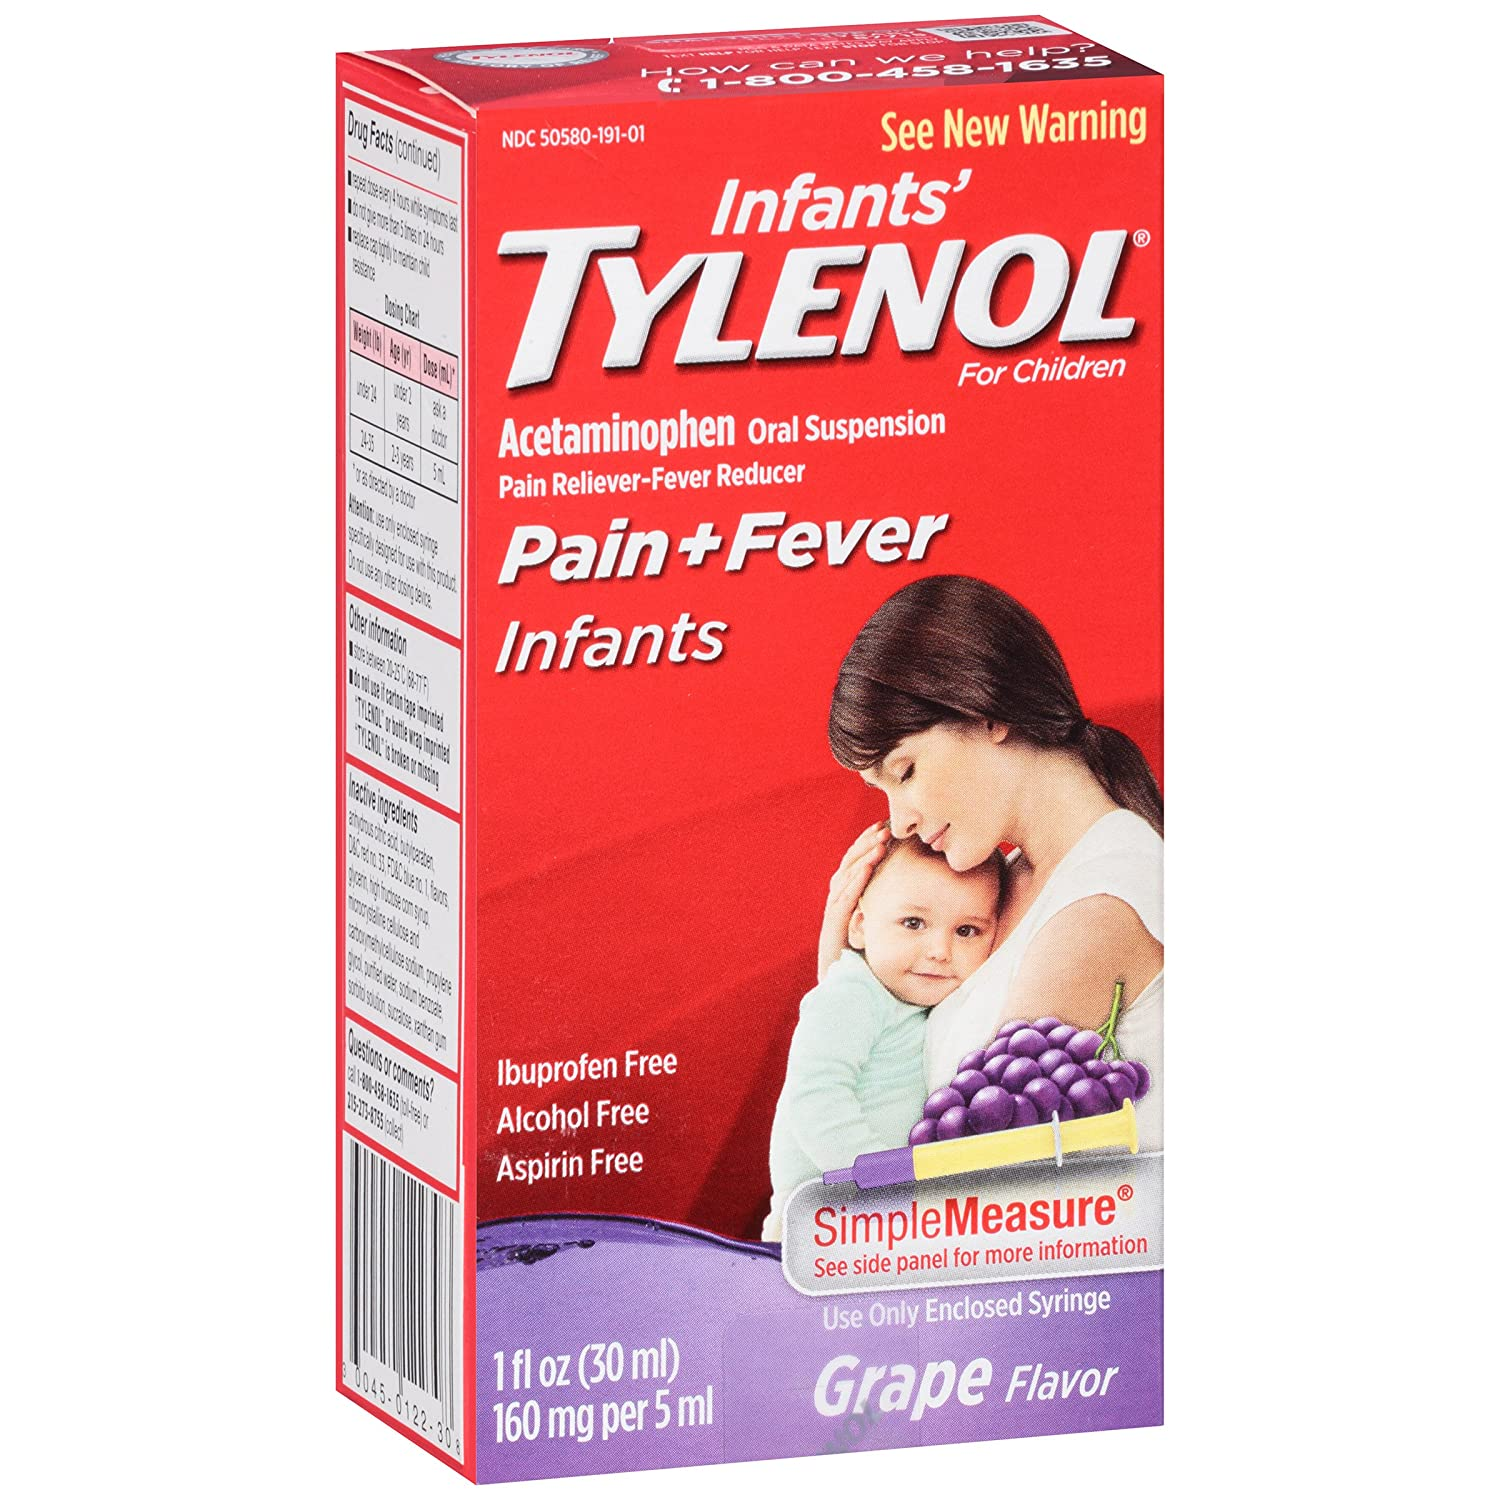 Tylenol Infants Drops Reviews Tylenol Infants Drops Reviews new pics